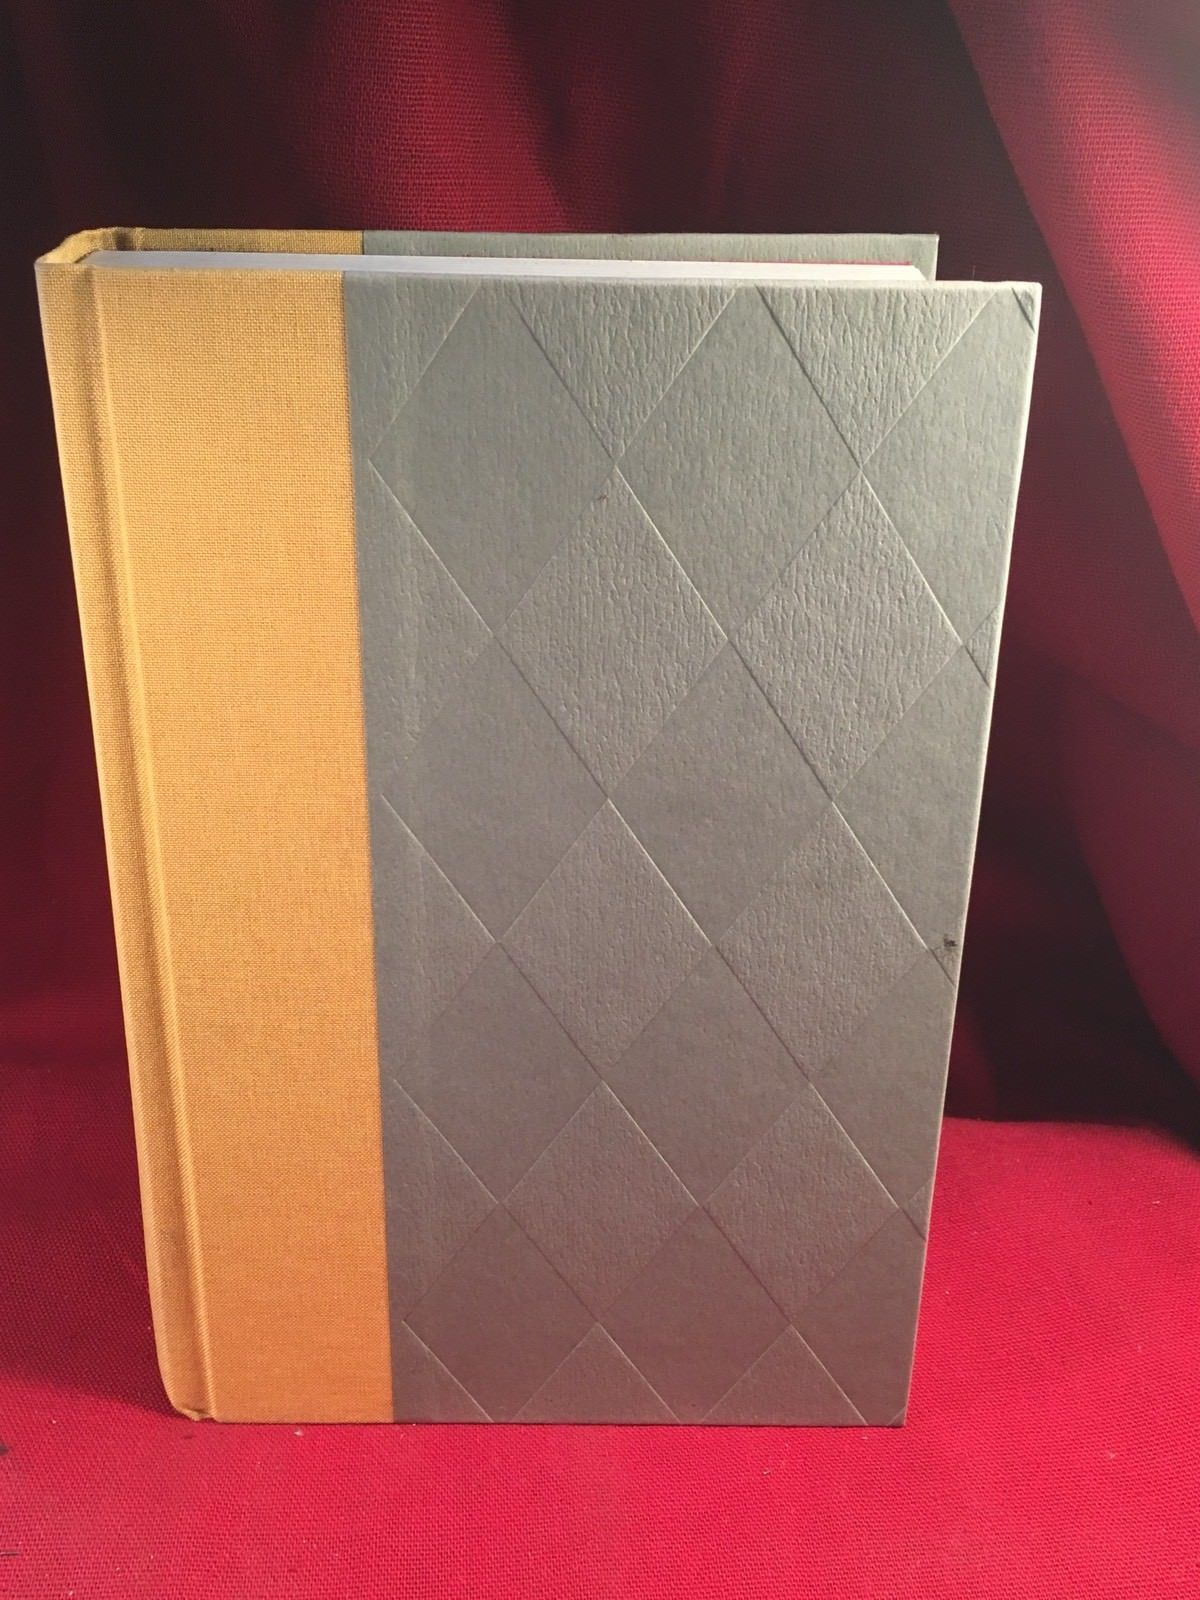 Harry Potter and the Deathly Hallows - J. K. Rowling 1st Printing